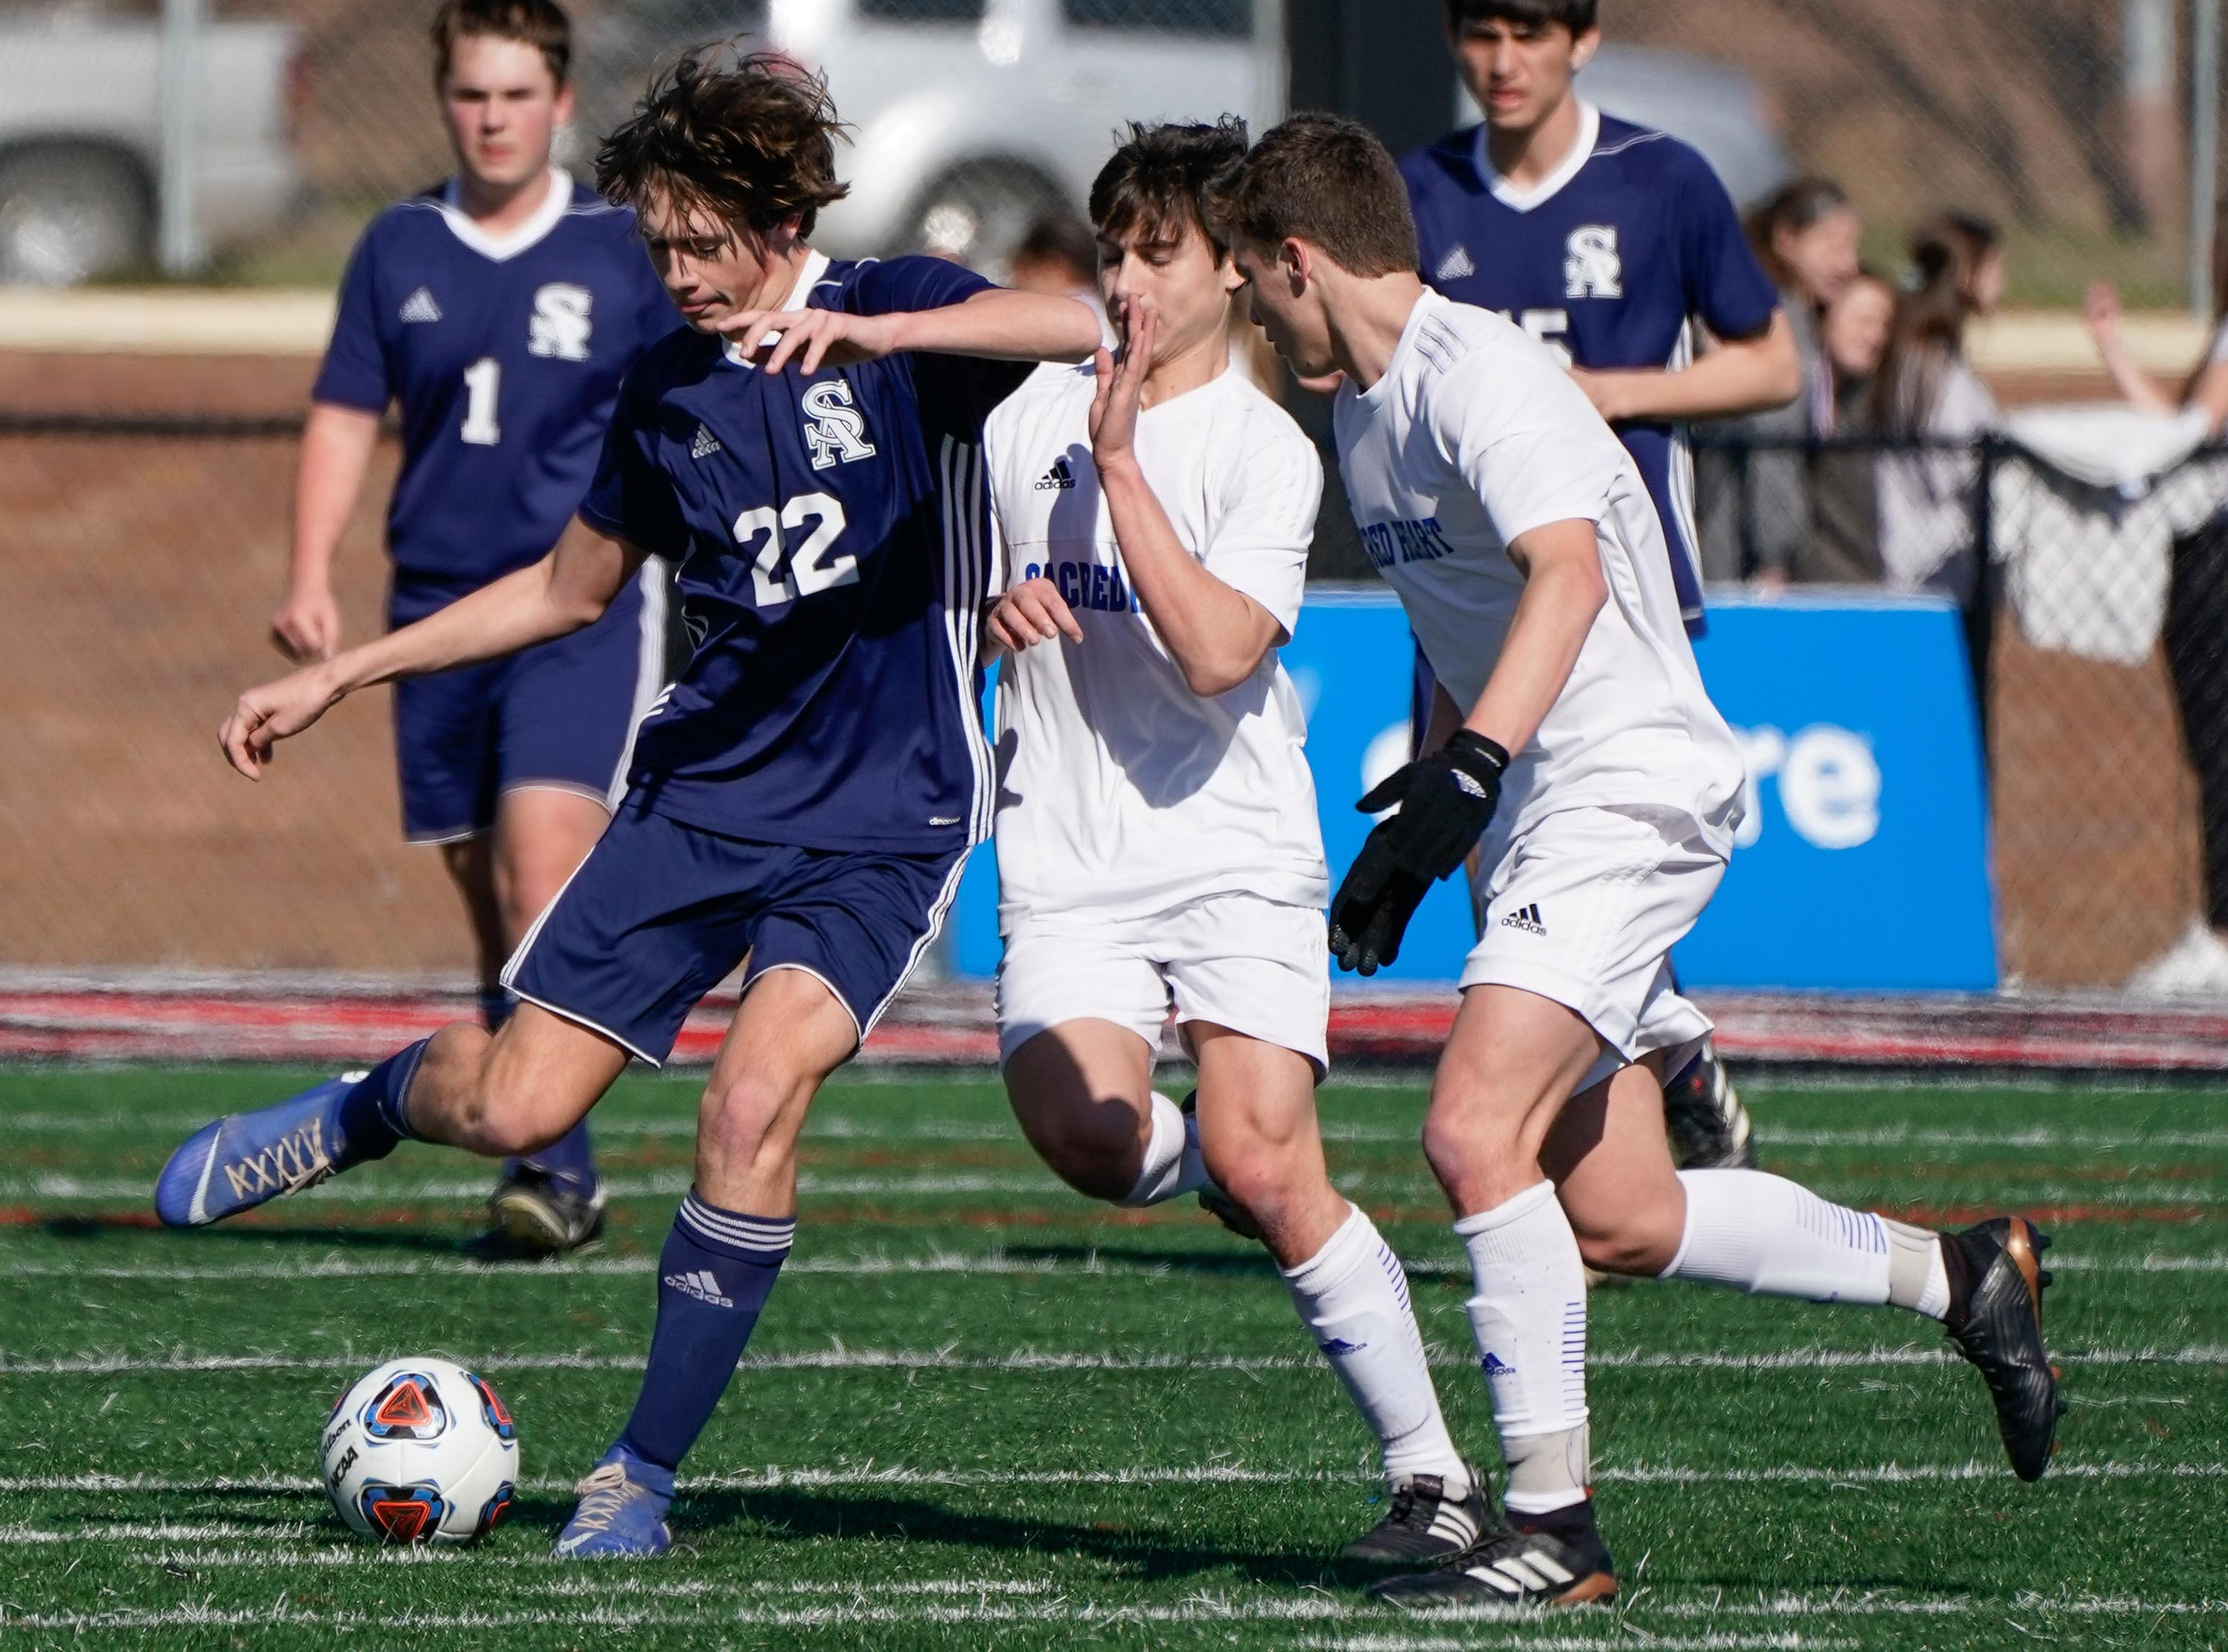 St. Andrew's Chadwick Collins (22) tries to control a ball against Sacred Heart during the MHSAA 1A,2A,3A  Boys Soccer Championships held at Brandon High School in Brandon, MS, Saturday February 9, 2019.(Bob Smith-For The Clarion Ledger)